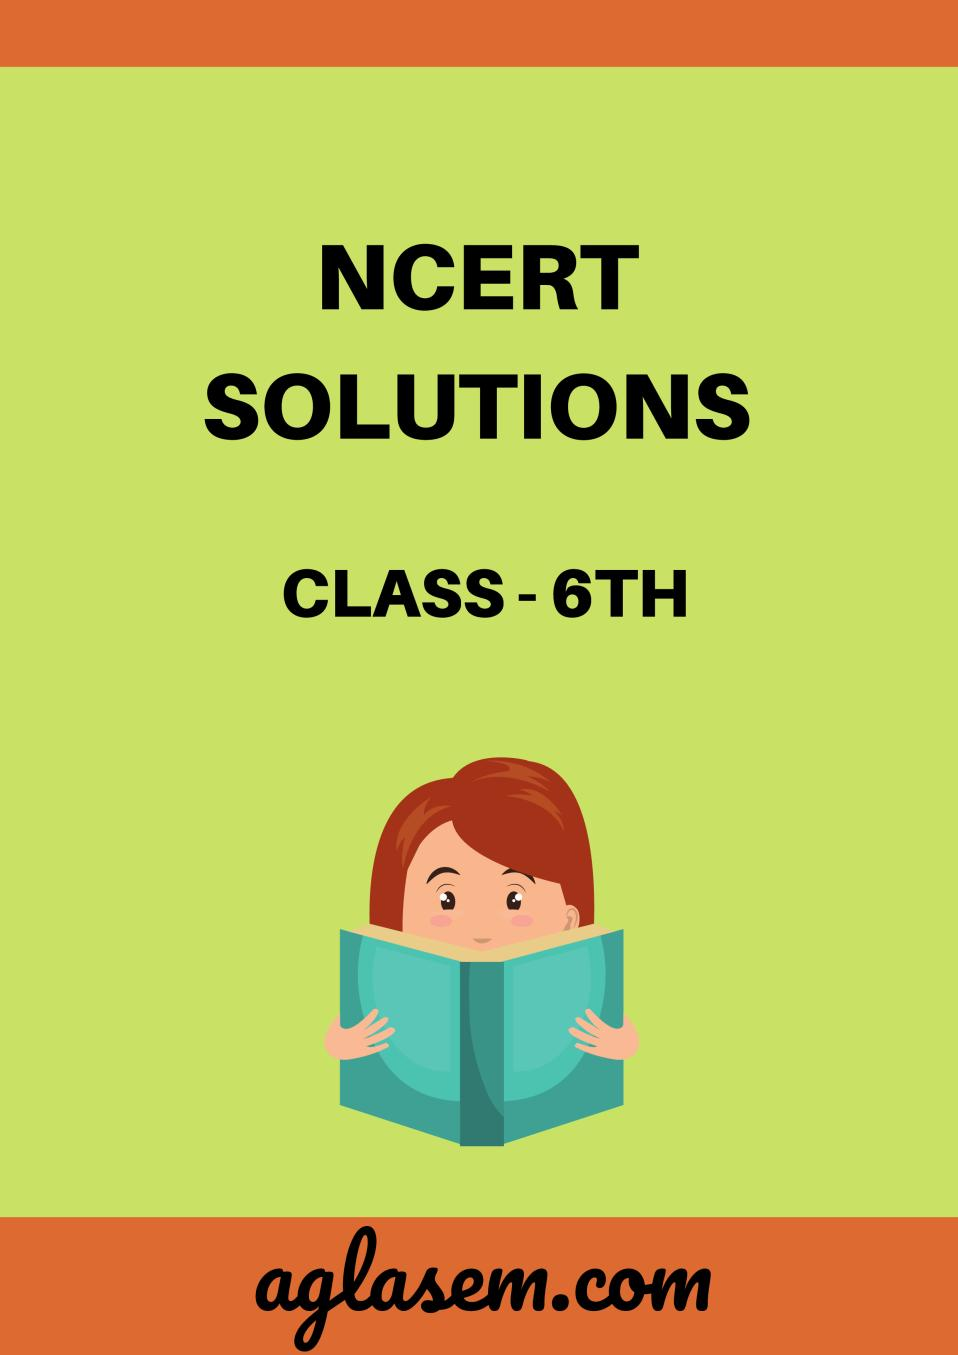 NCERT Solutions Class 6 English (A Pact with the Sun) Chapter 6 The Monkey and the Crocodile